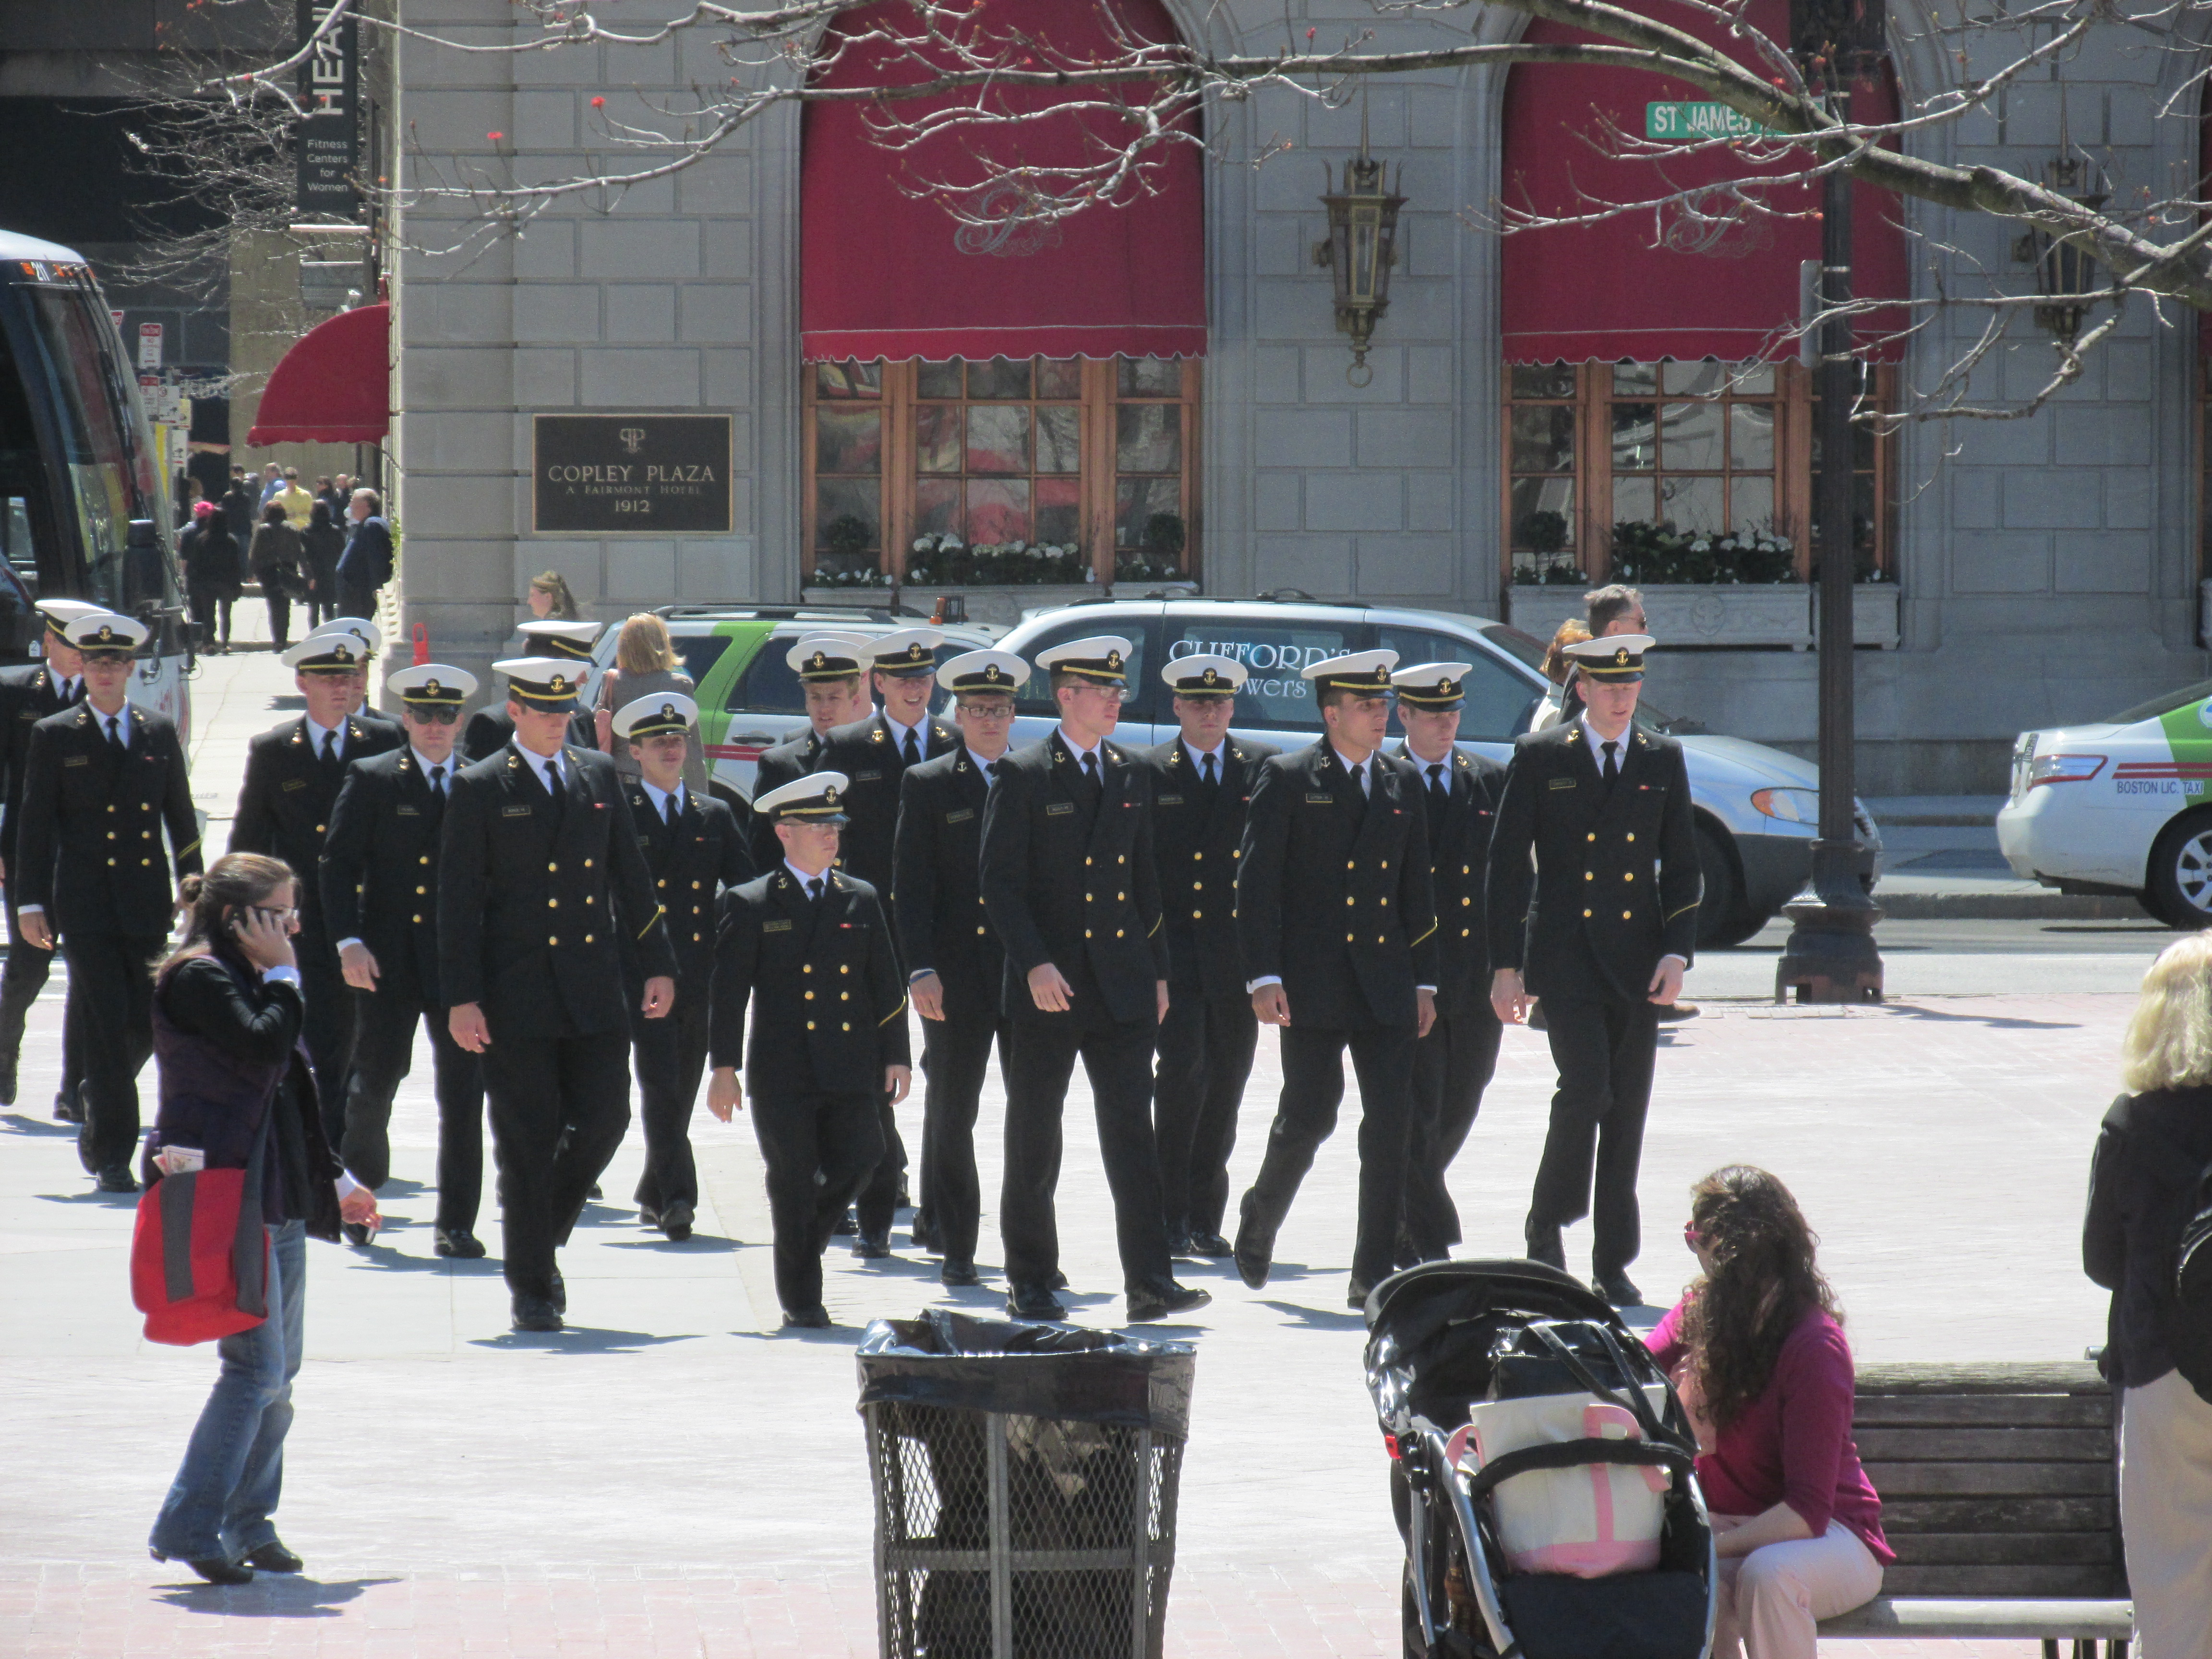 The Naval Academy marches to the Boston Marathon Memorial.